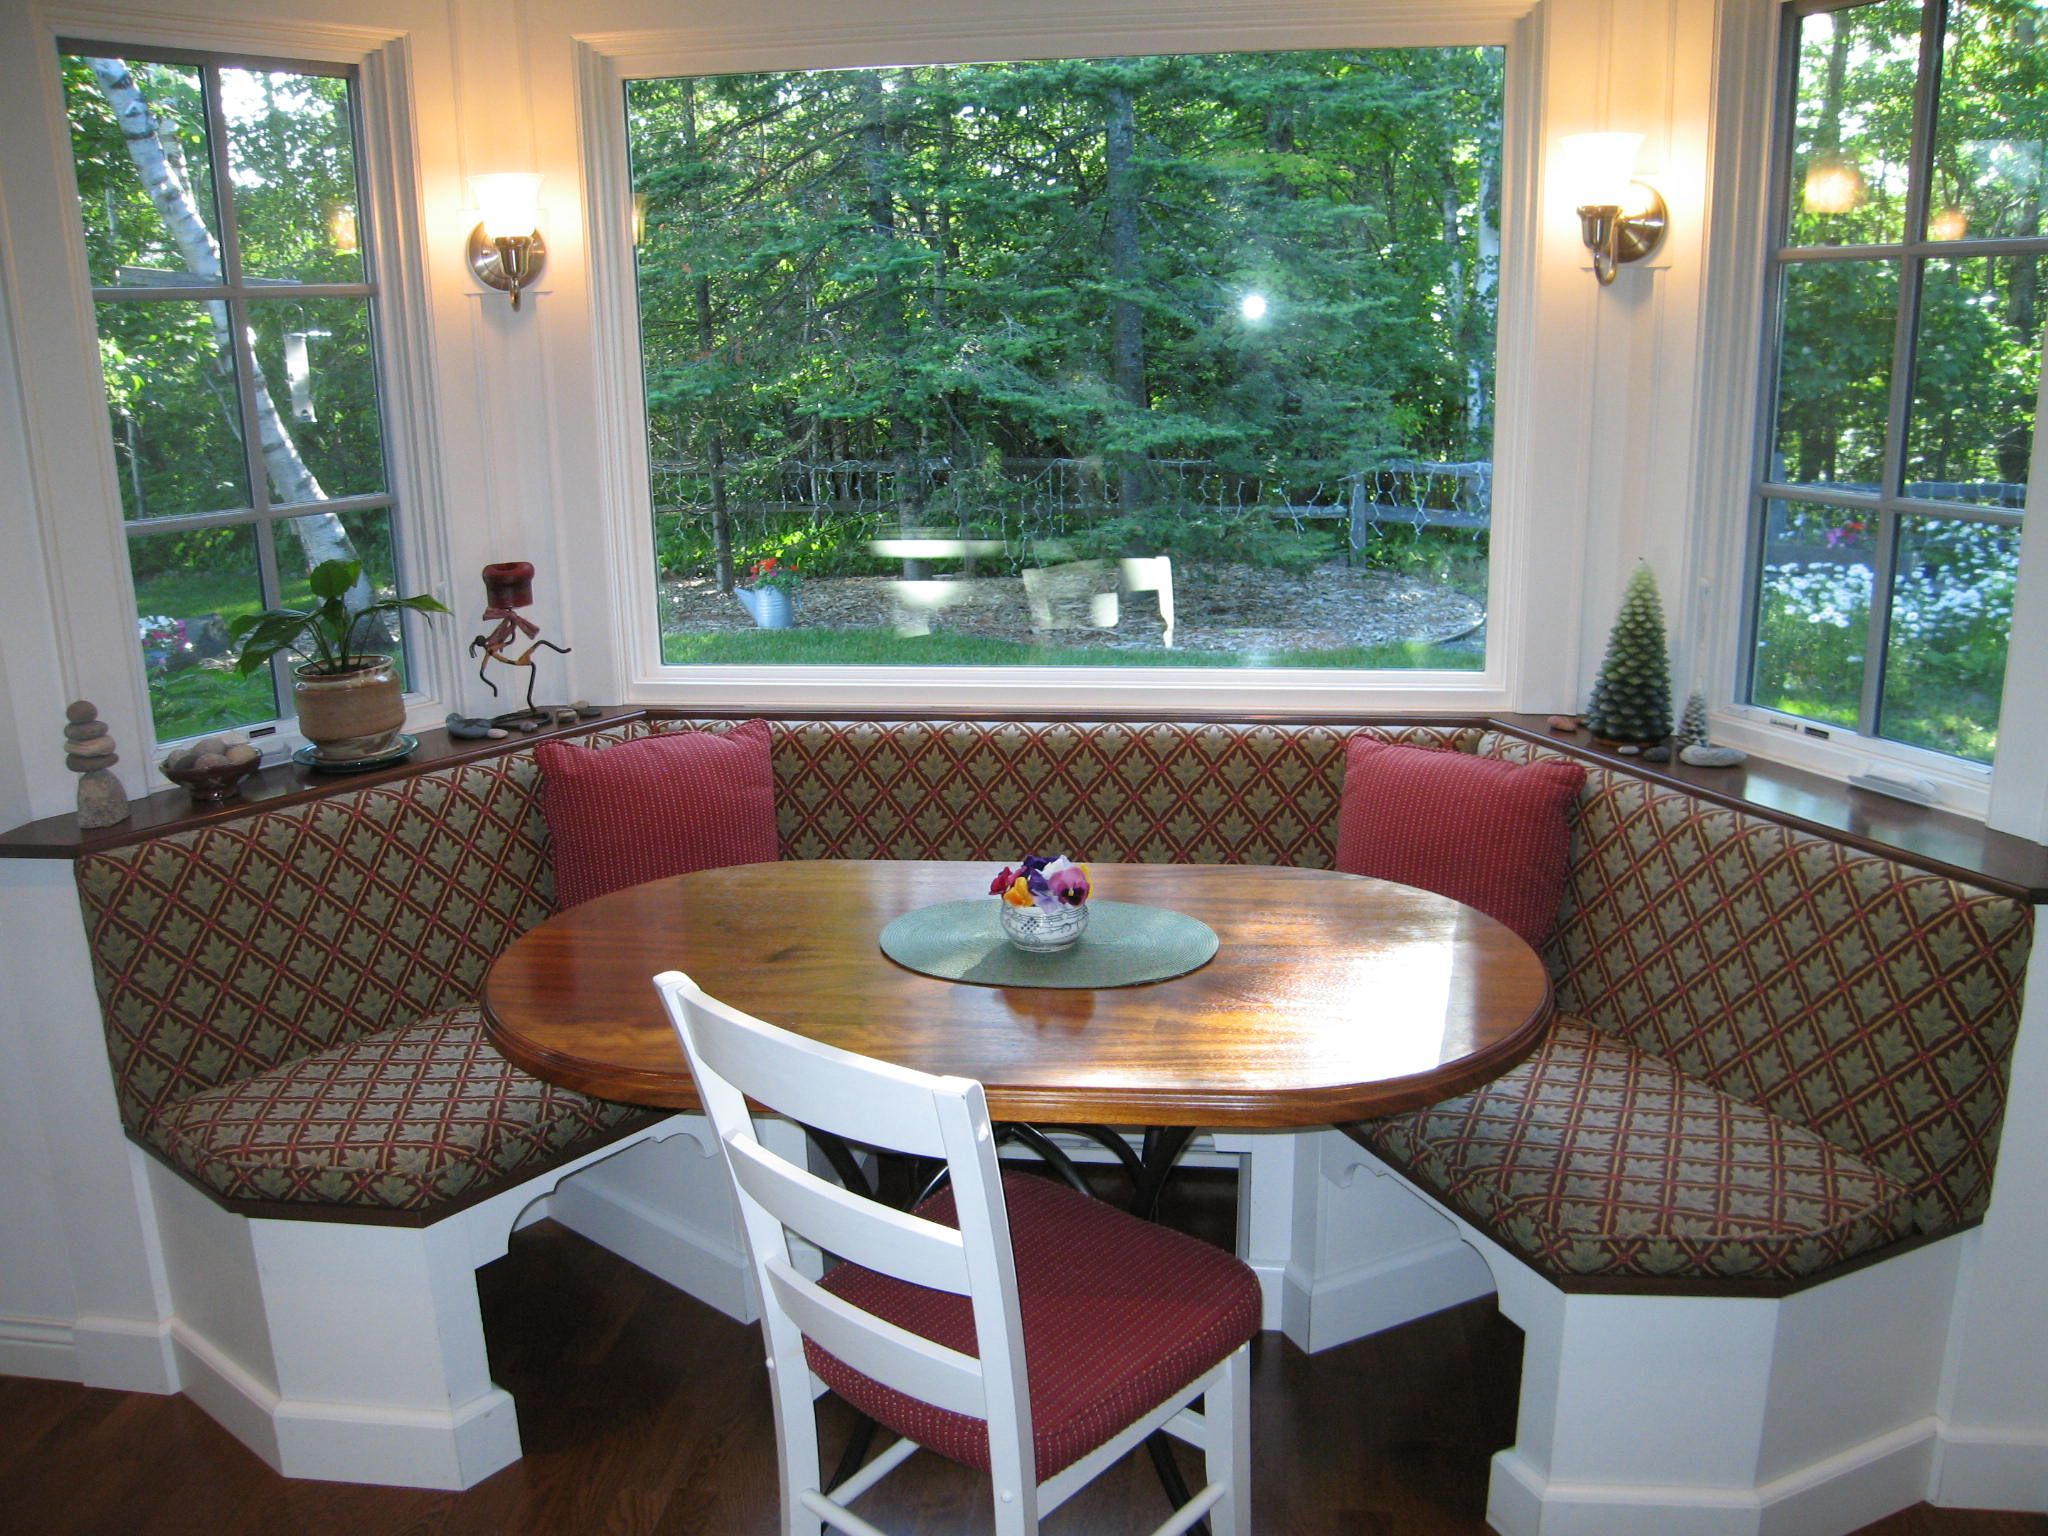 Banquette Seating Maximize Family Togetherness In The Kitchen Banquette Seating In Kitchen Dining Furniture Makeover Window Seat Kitchen